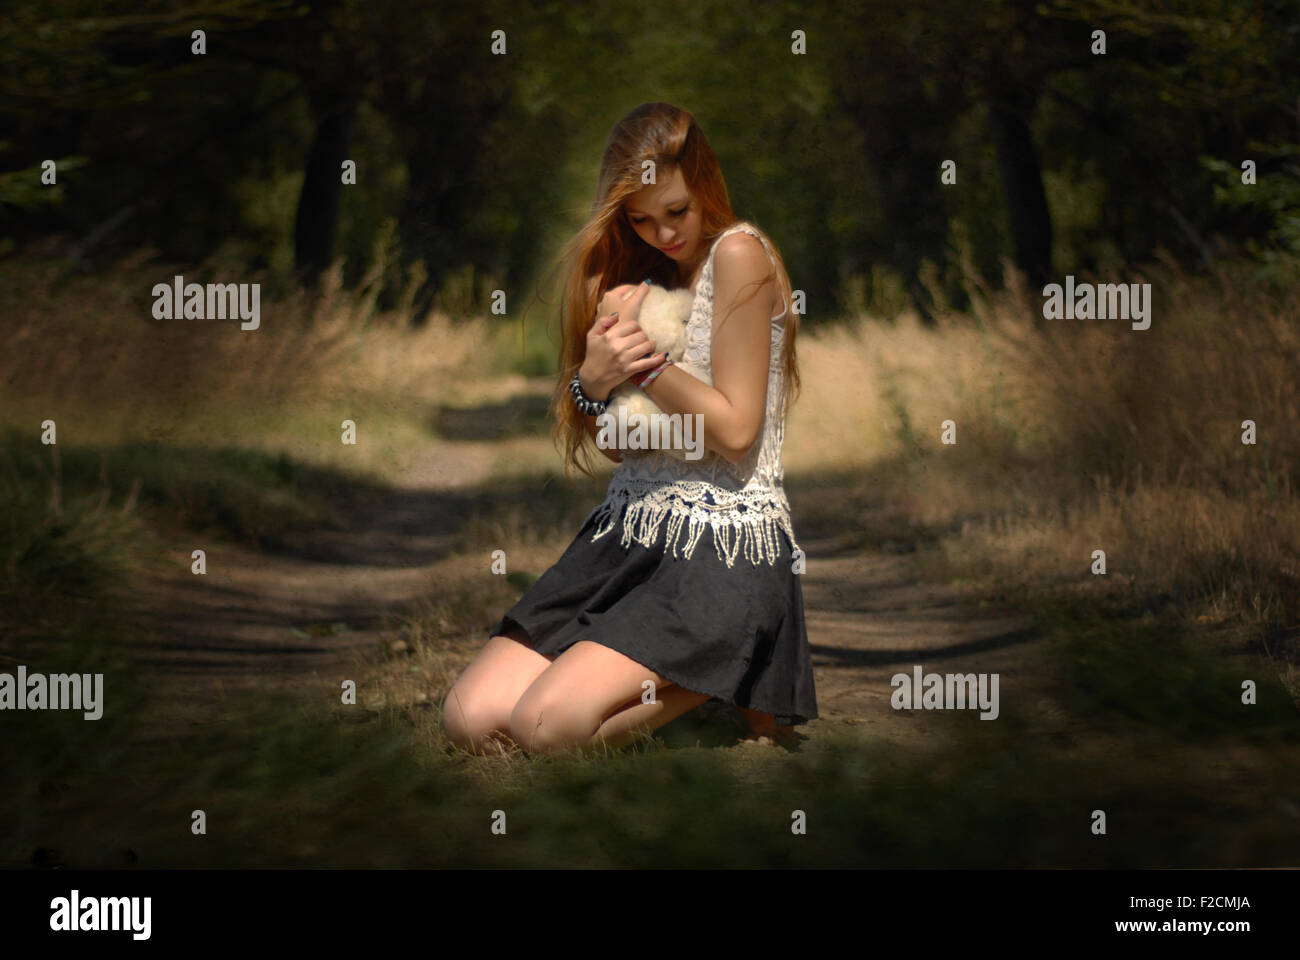 Lost soul and innocence - girl hugging teddy bear in forest crying girl in the forest with teddy bear  beautiful - Stock Image